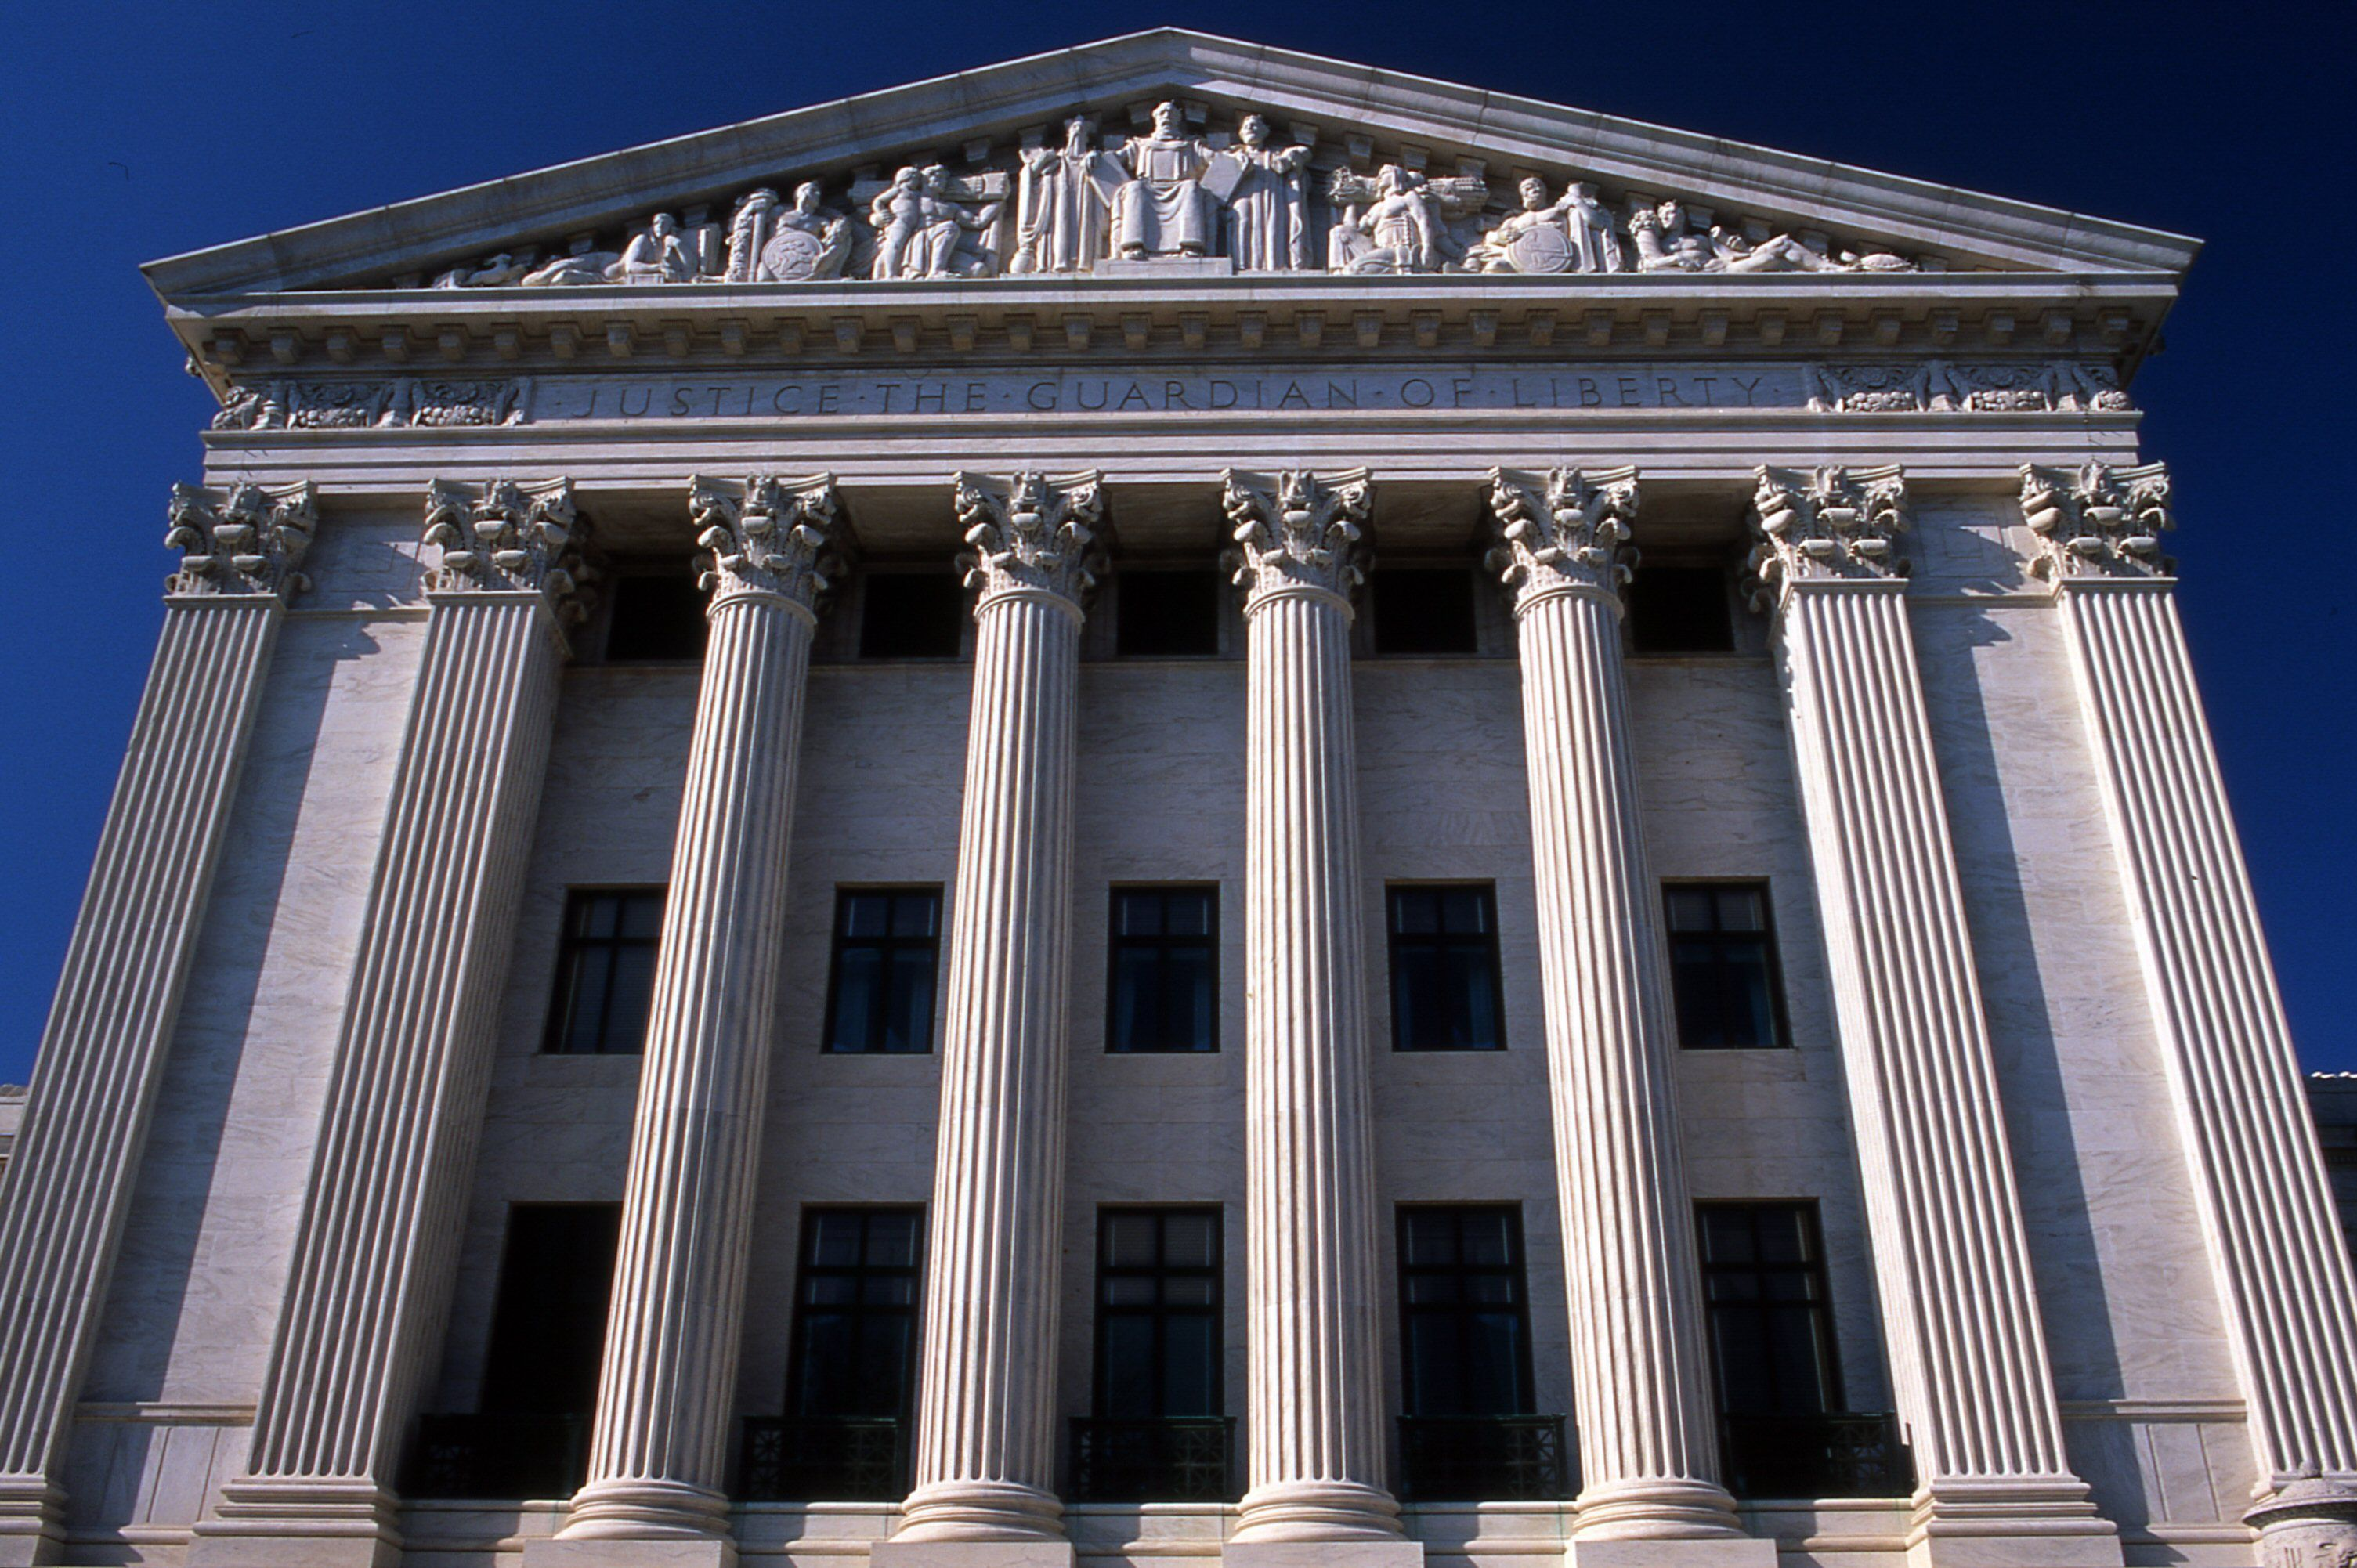 classical stone facade with four columns and two pilasters on each side, pediment of statuary